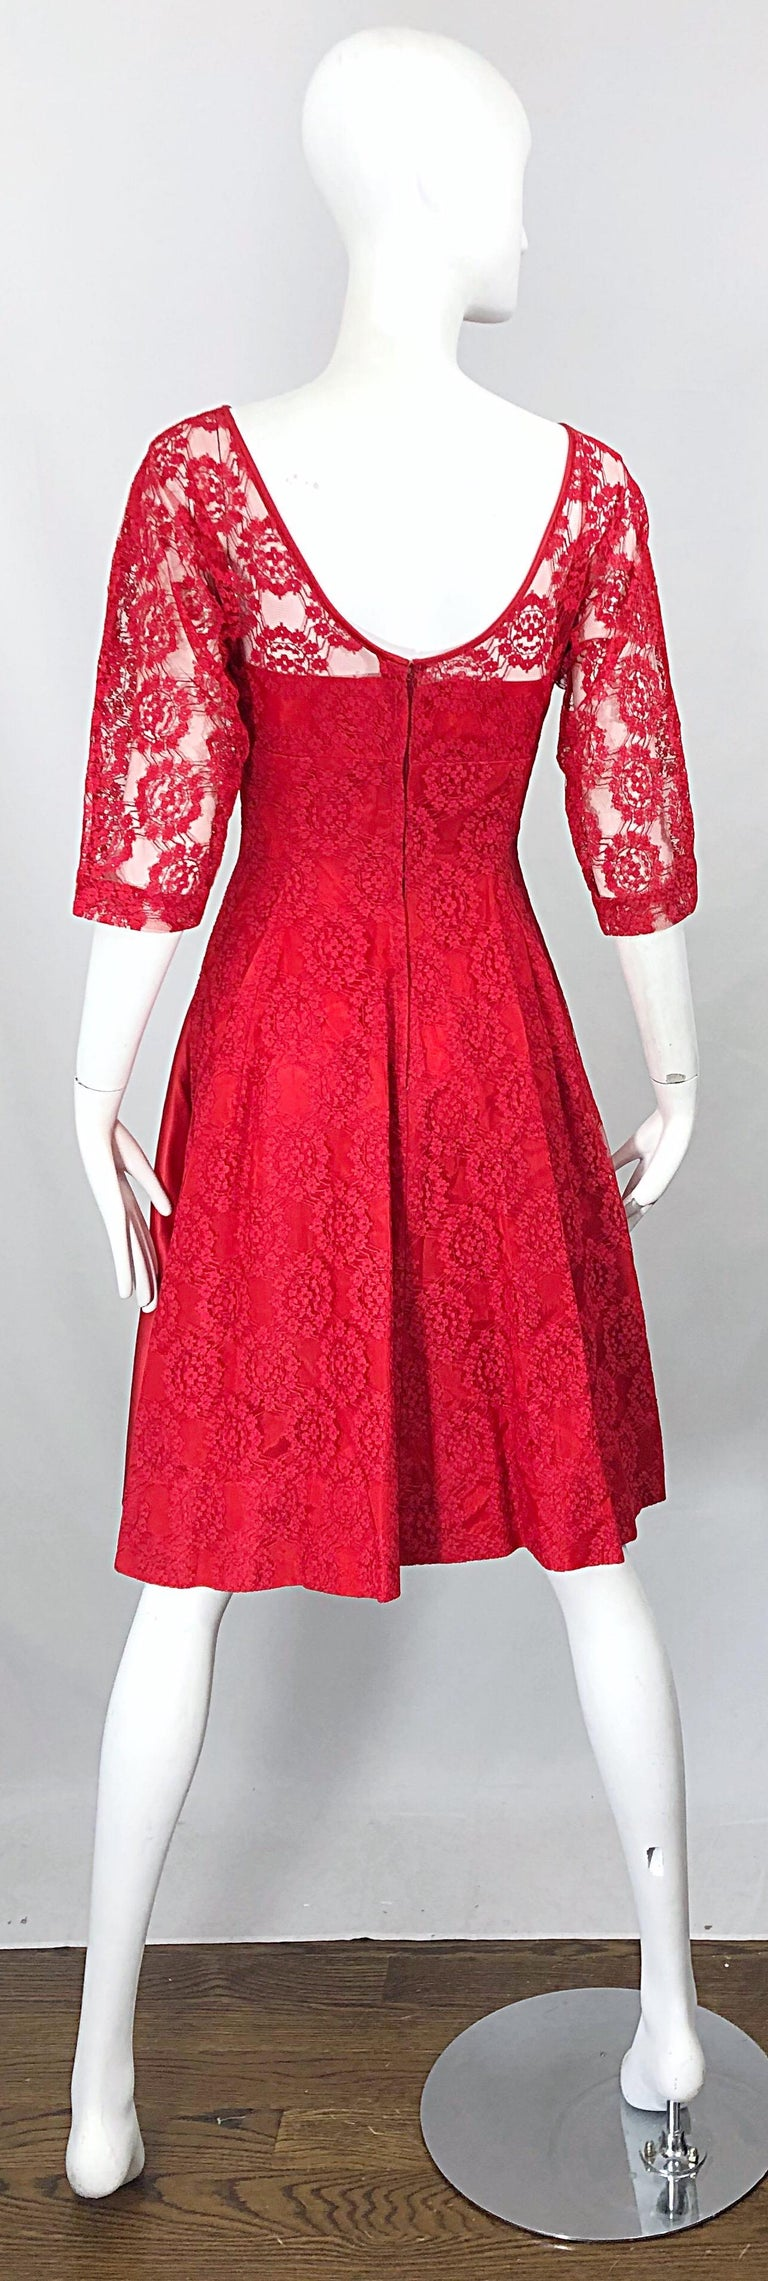 1950s Demi Couture Lips Stick Red Silk Lace 3/4 Sleeve Vintage 50s Dress In Excellent Condition For Sale In Chicago, IL